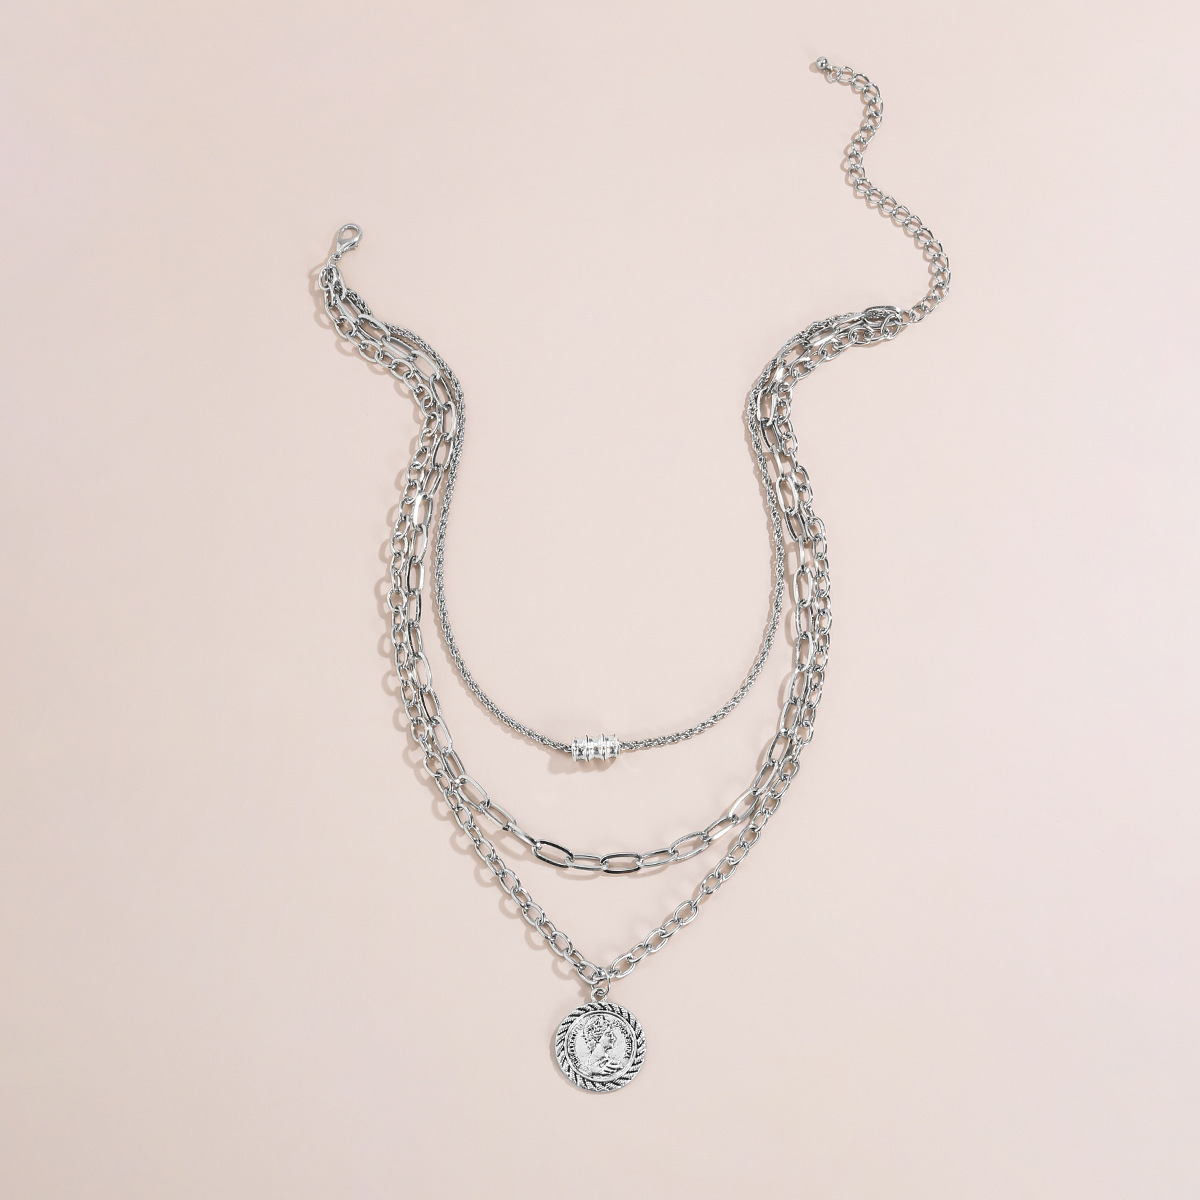 fashion jewelry retro simple multi-layer metal clavicle necklace portrait alloy necklace  NHXR263185